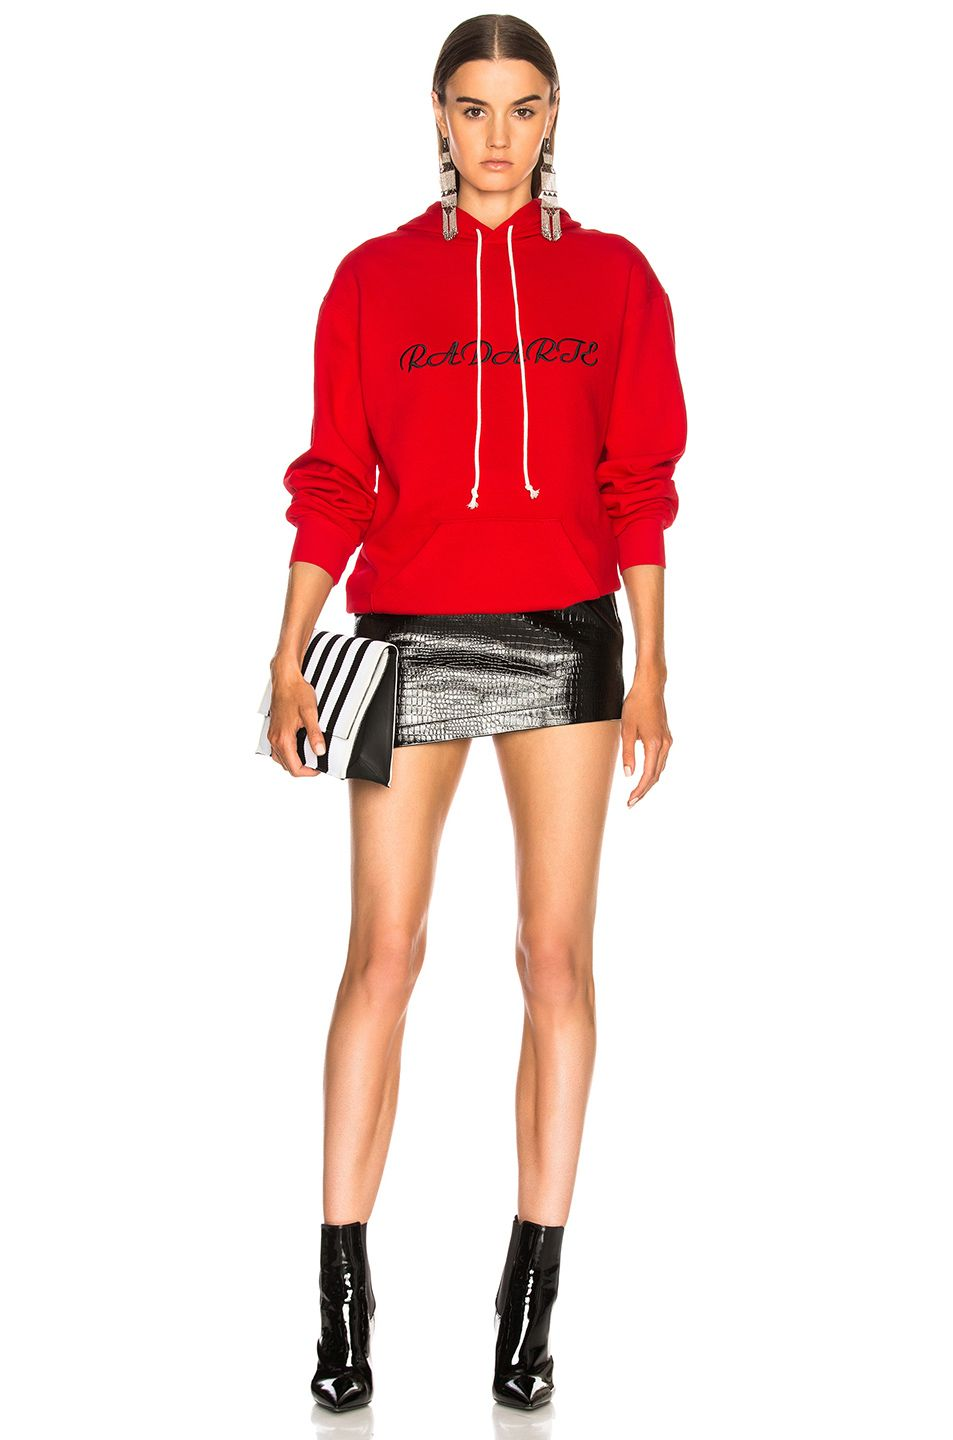 Oversized Radarte Los Angeles Paris Embroidery Hoodie in Red Rodarte Purchase Discount Manchester Outlet Where To Buy Prices Online Clearance Cheap RH26LhQ5D